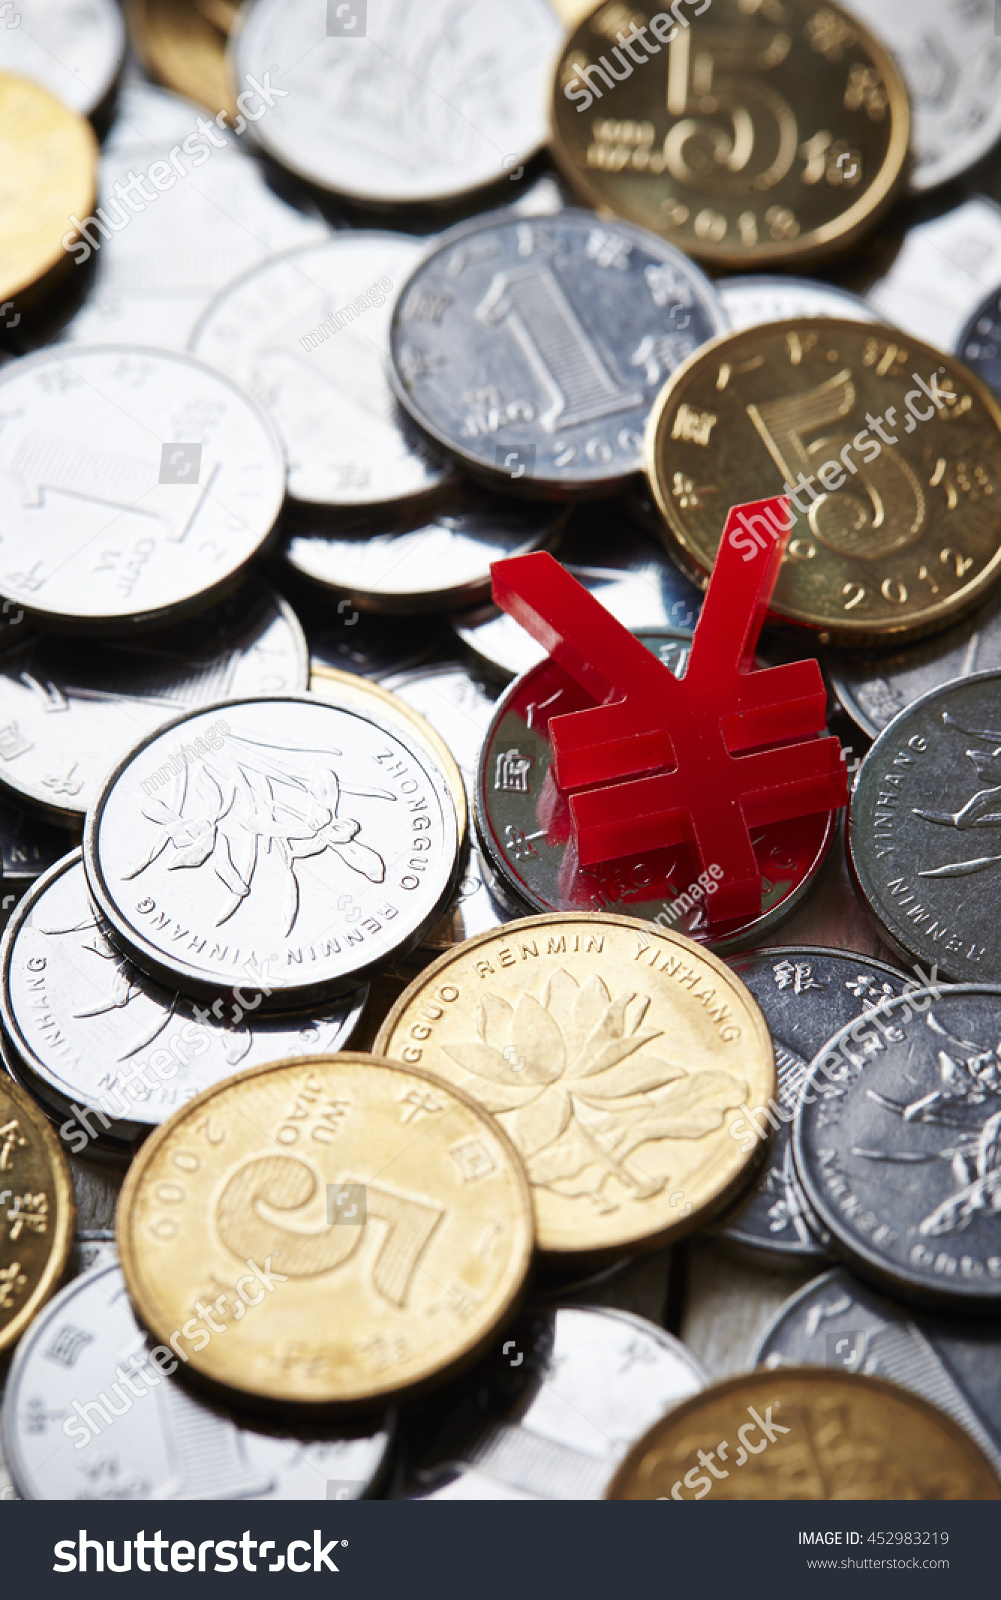 Chinese rmb coins currency symbol stock photo 452983219 shutterstock chinese rmb coins with currency symbol buycottarizona Gallery